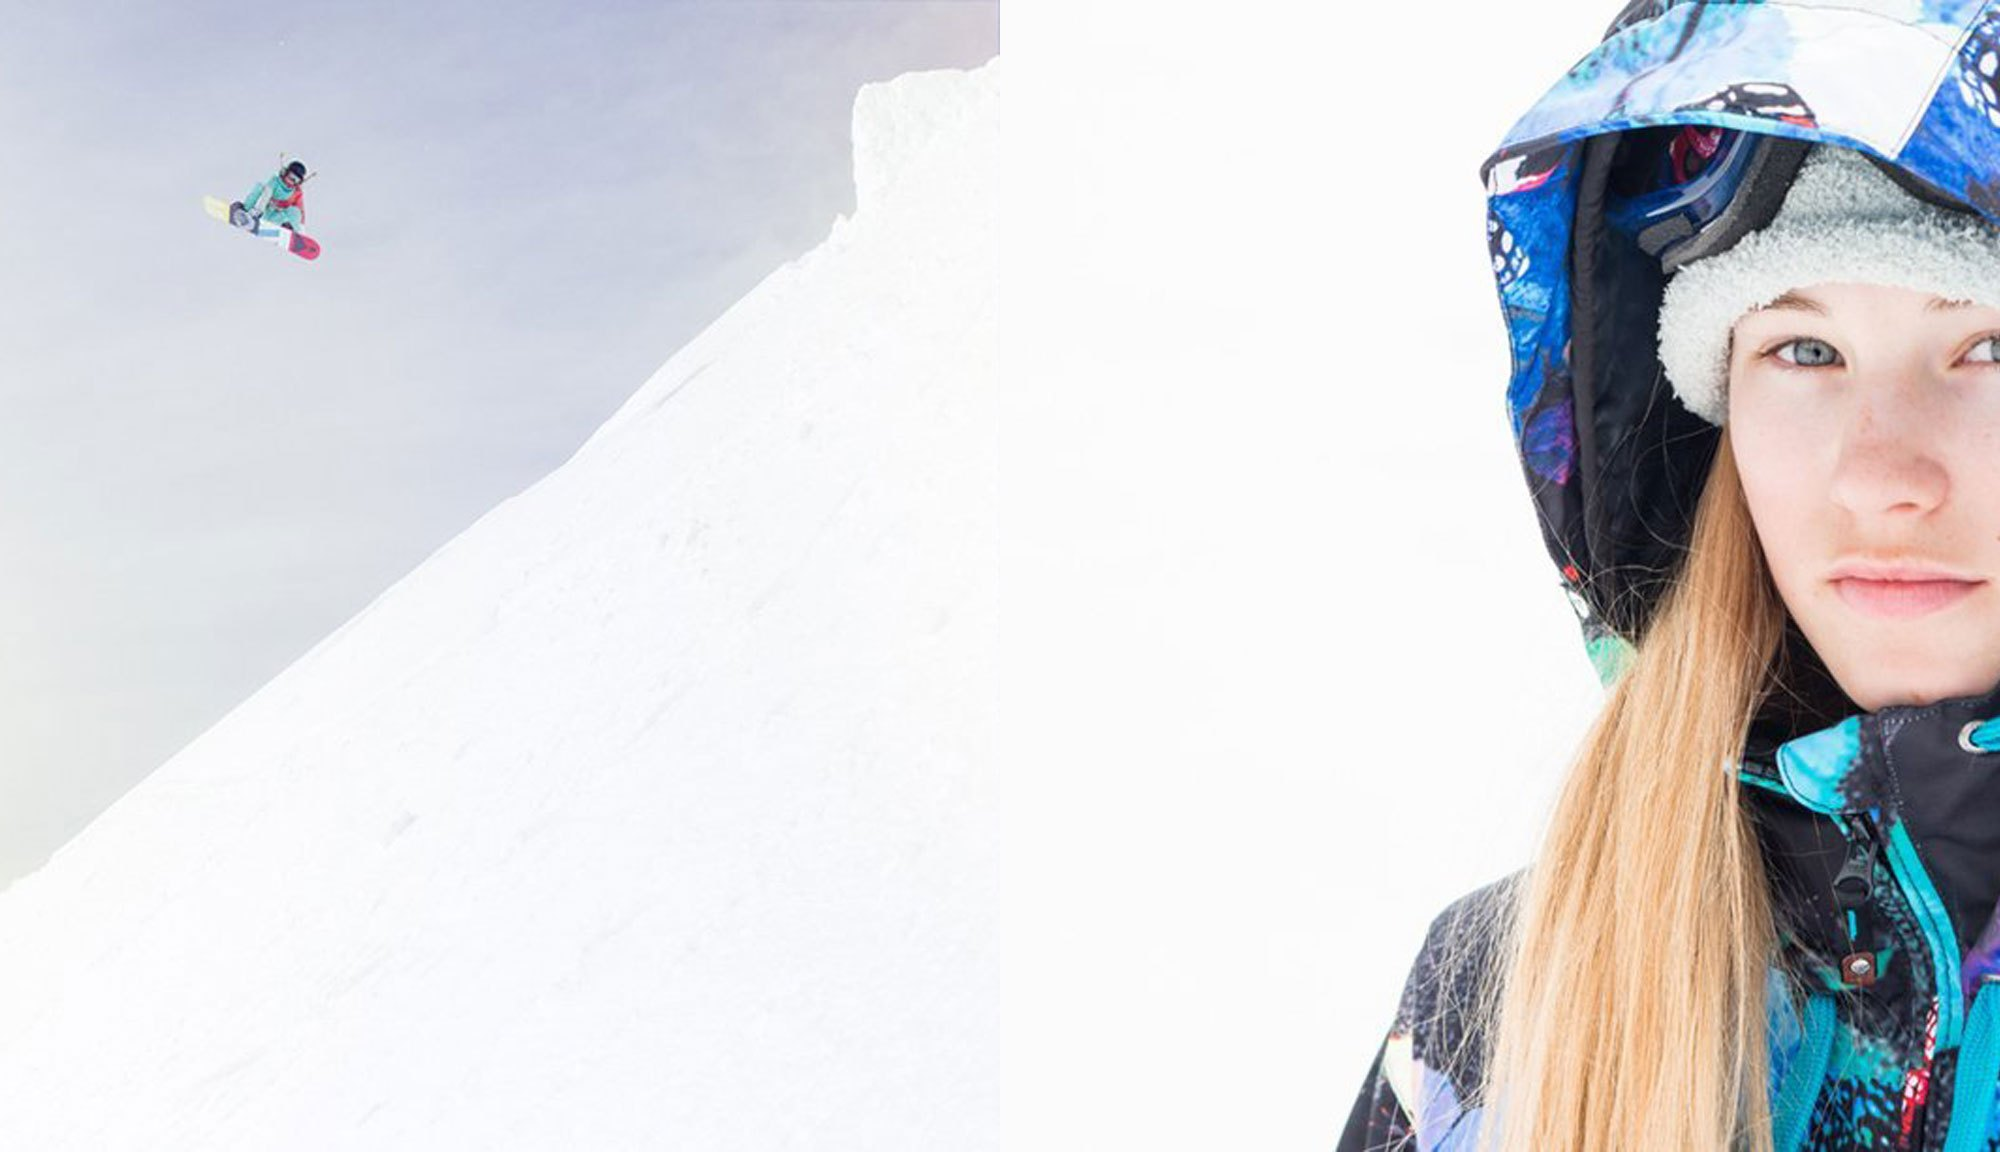 Katie Ormerod - X Games - Roxy photo